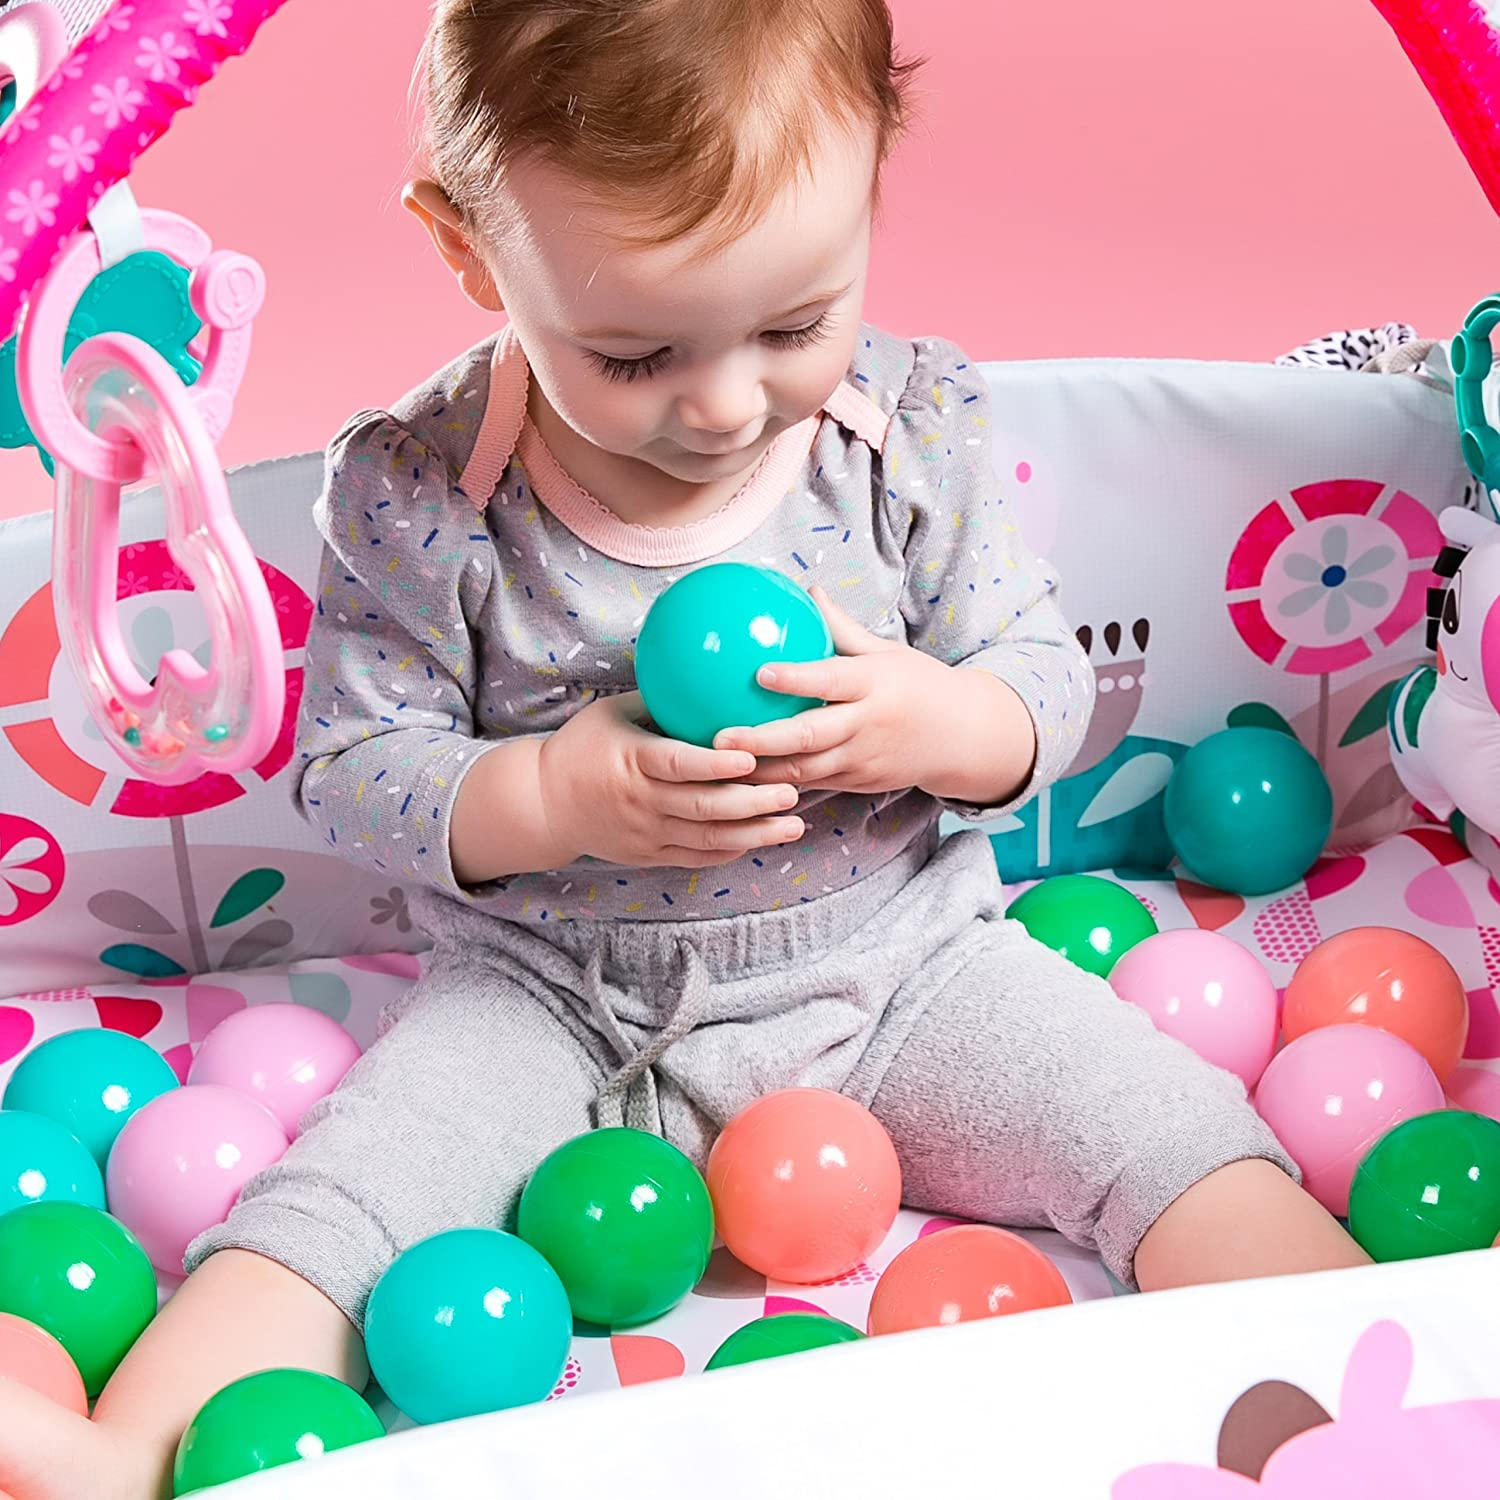 Your Way Ball Bright Starts 5-in-1 Play Activity Gym